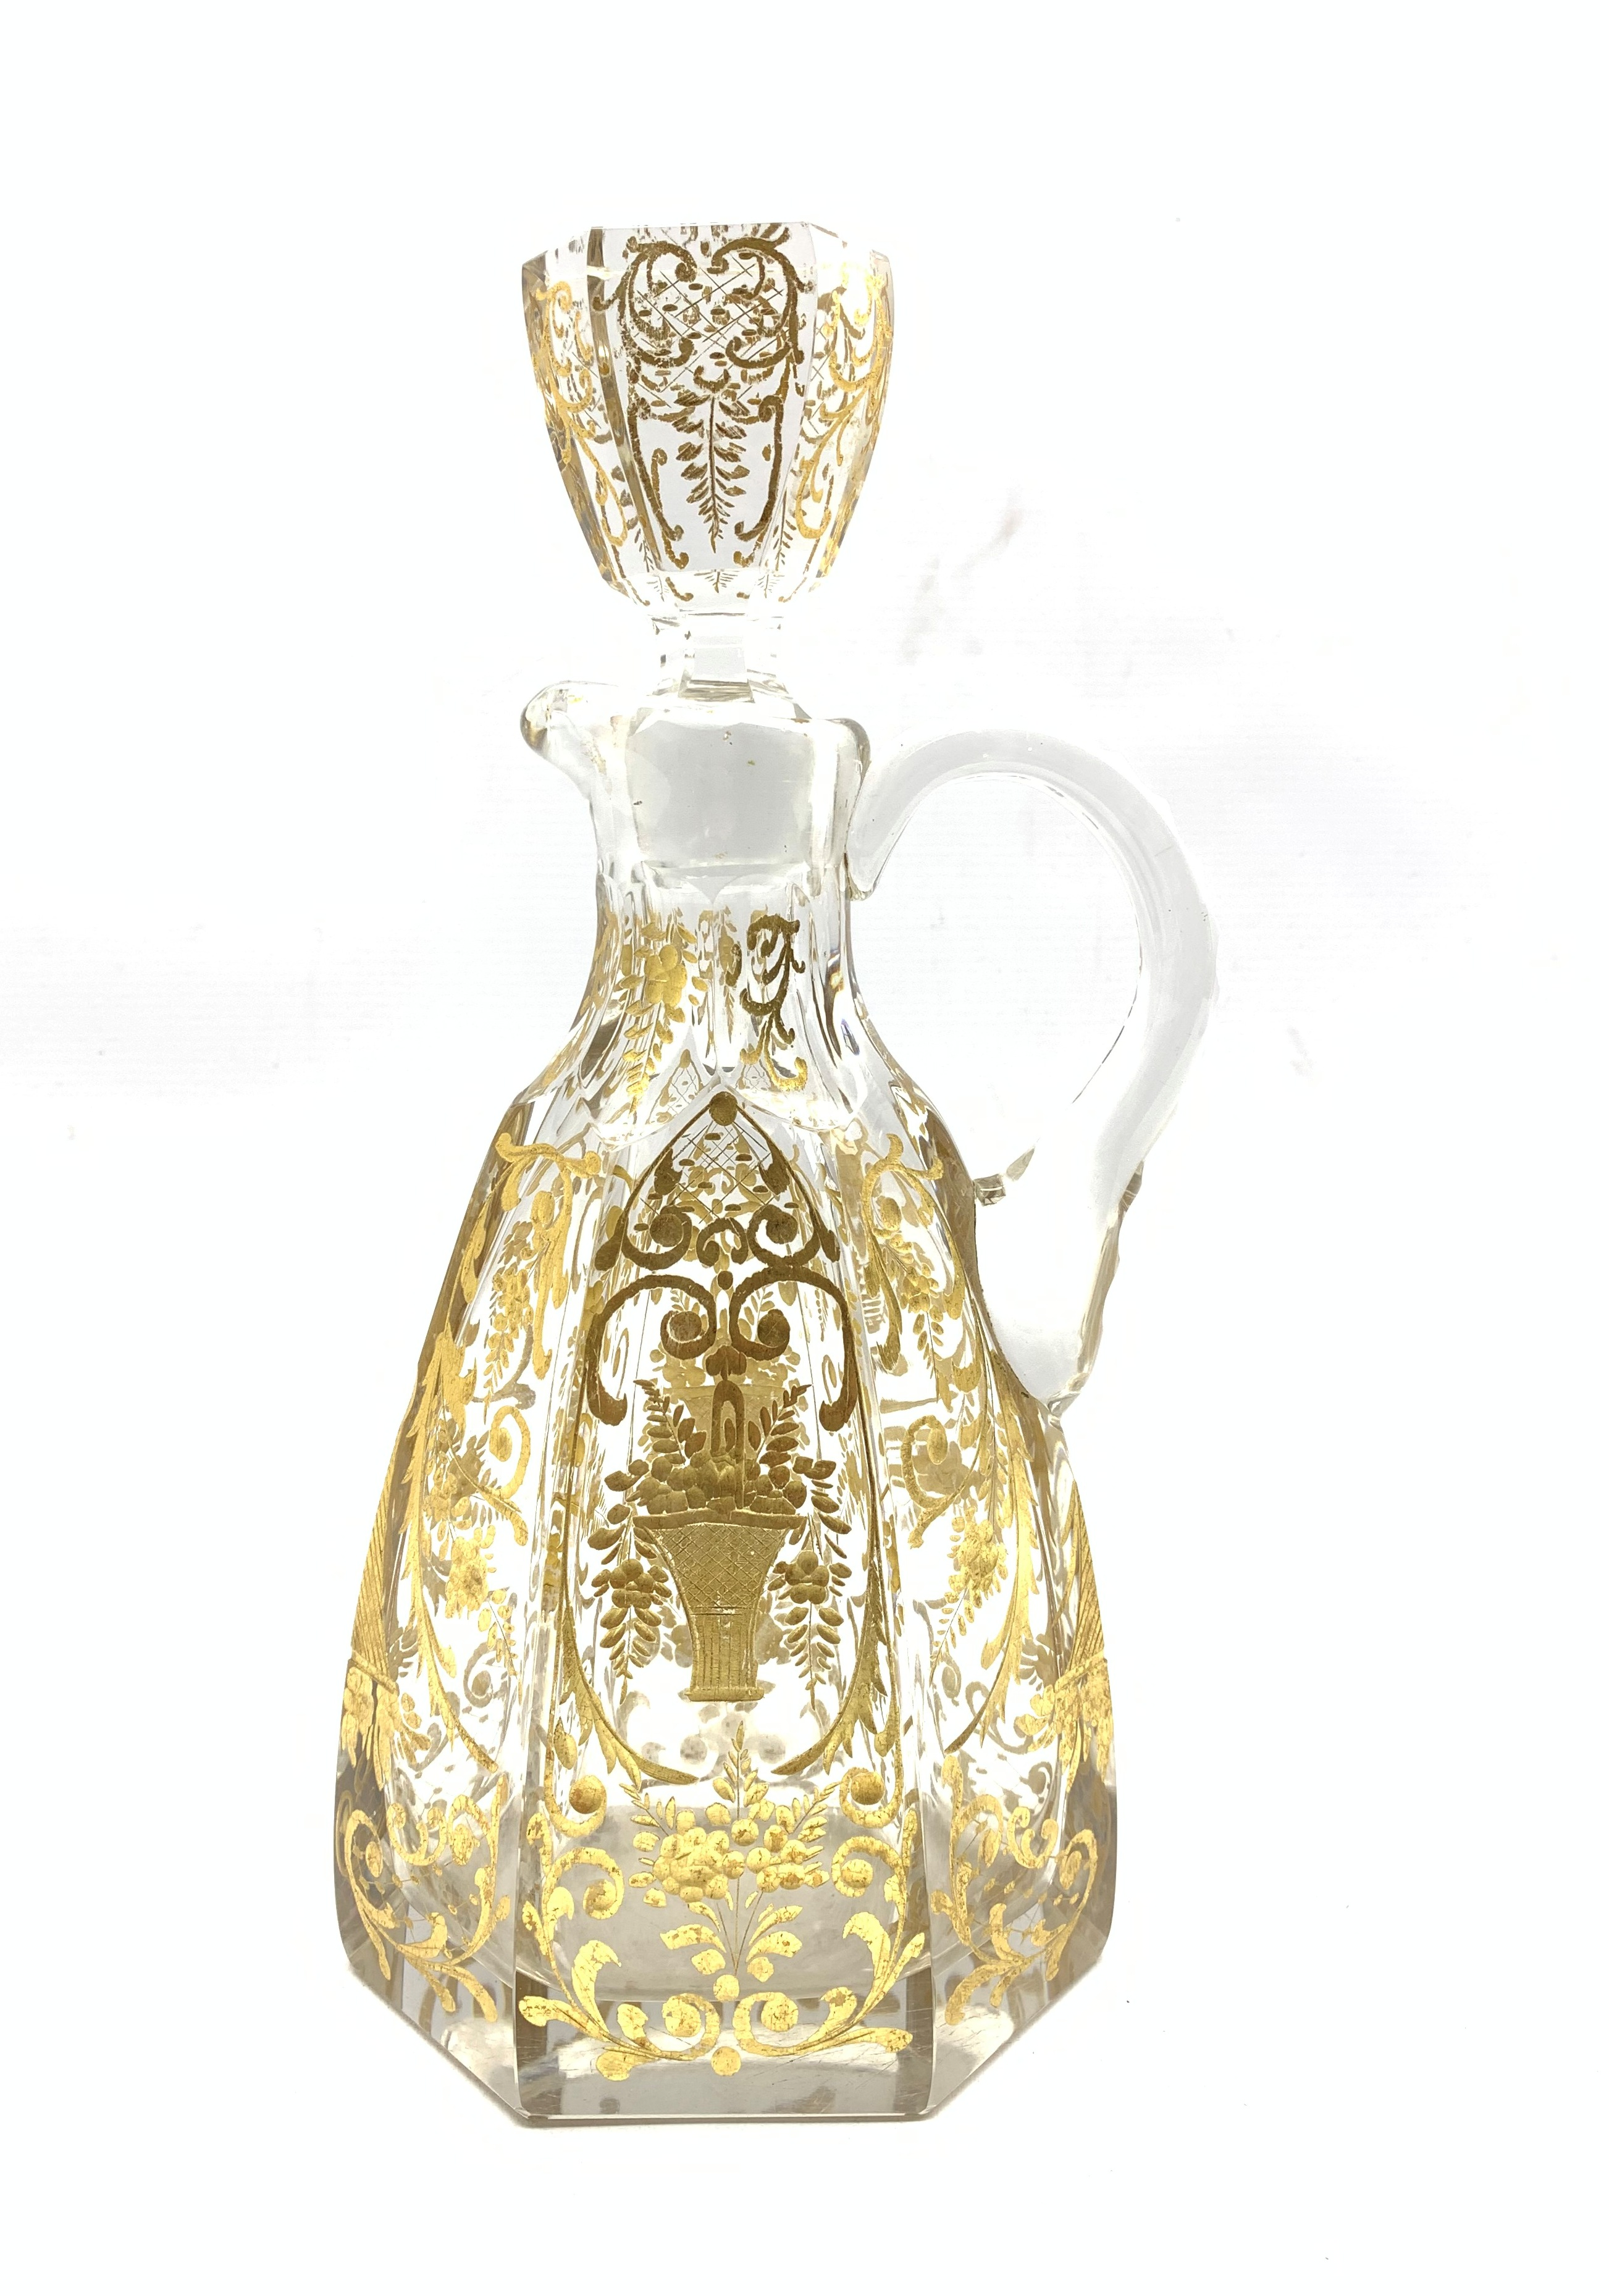 Early 20th century French glass claret jug of hexagonal design incised and gilded with trailing foli - Image 5 of 7